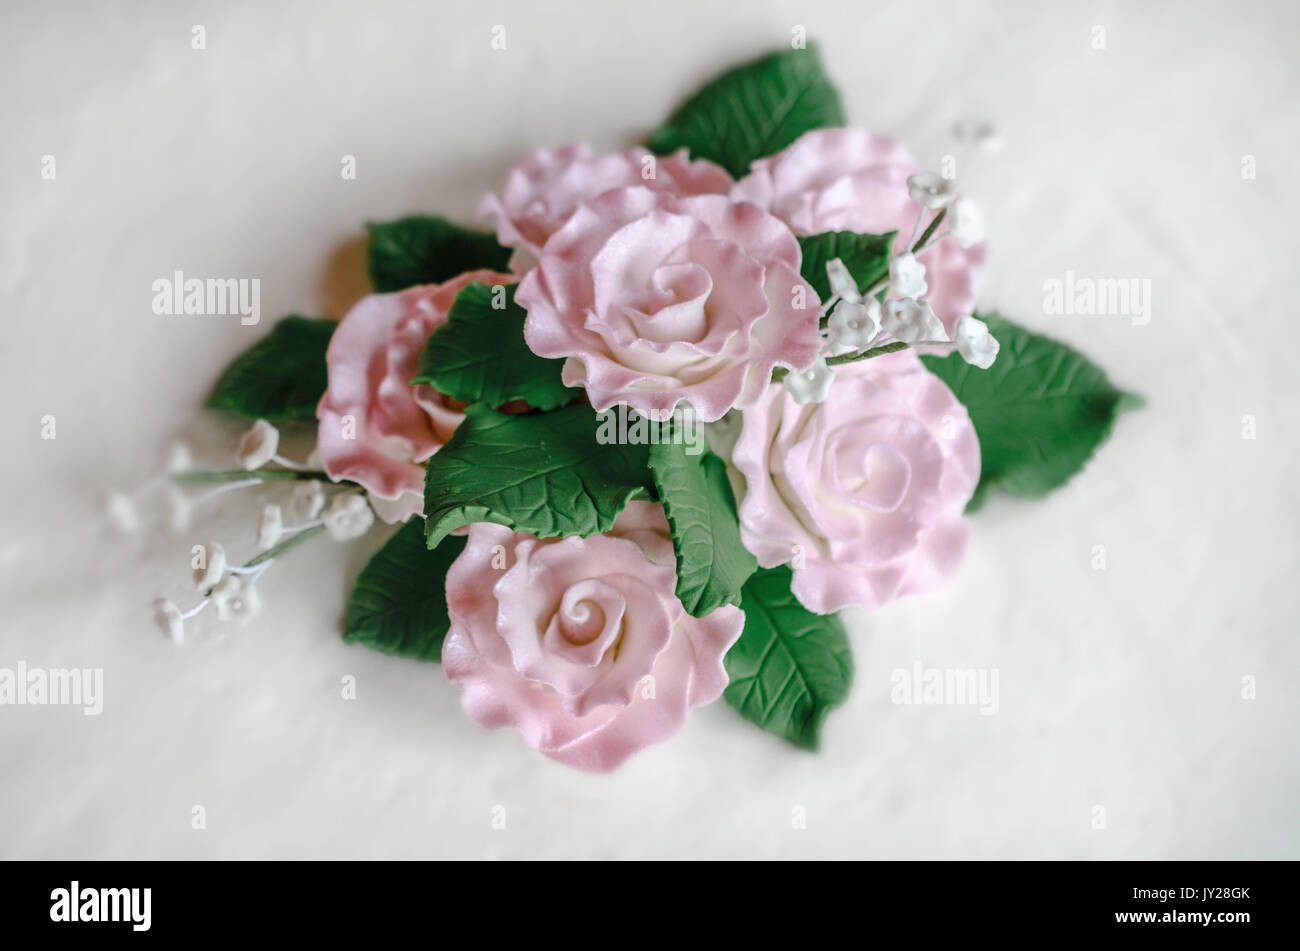 Fondant shaped like pink flowers and green leaves - Stock Image